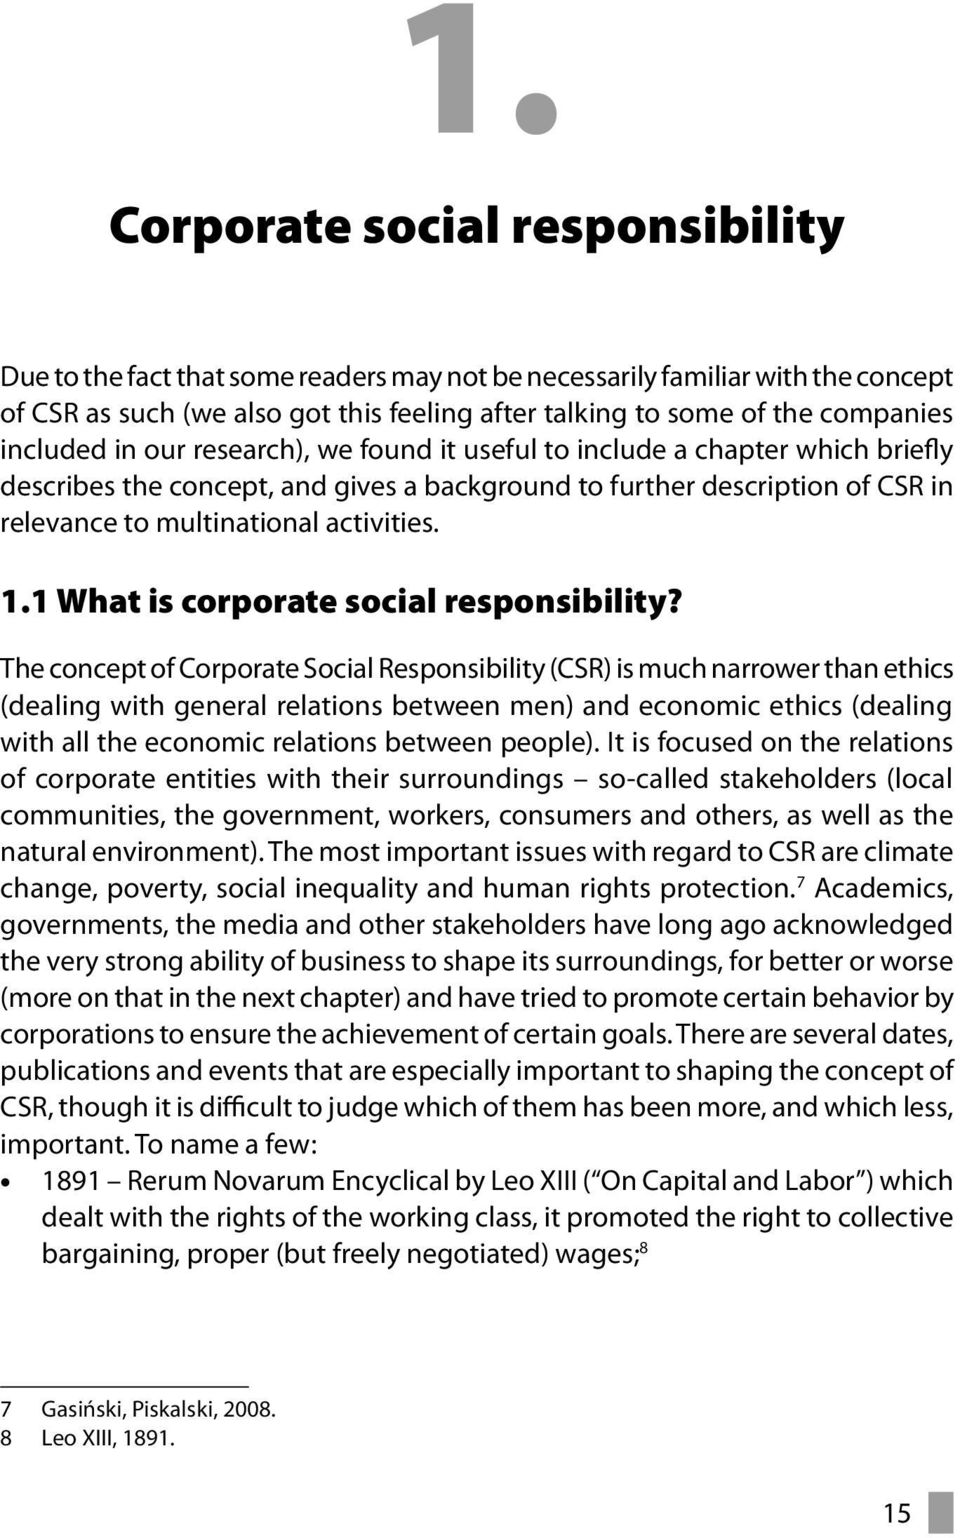 1.1 What is corporate social responsibility?